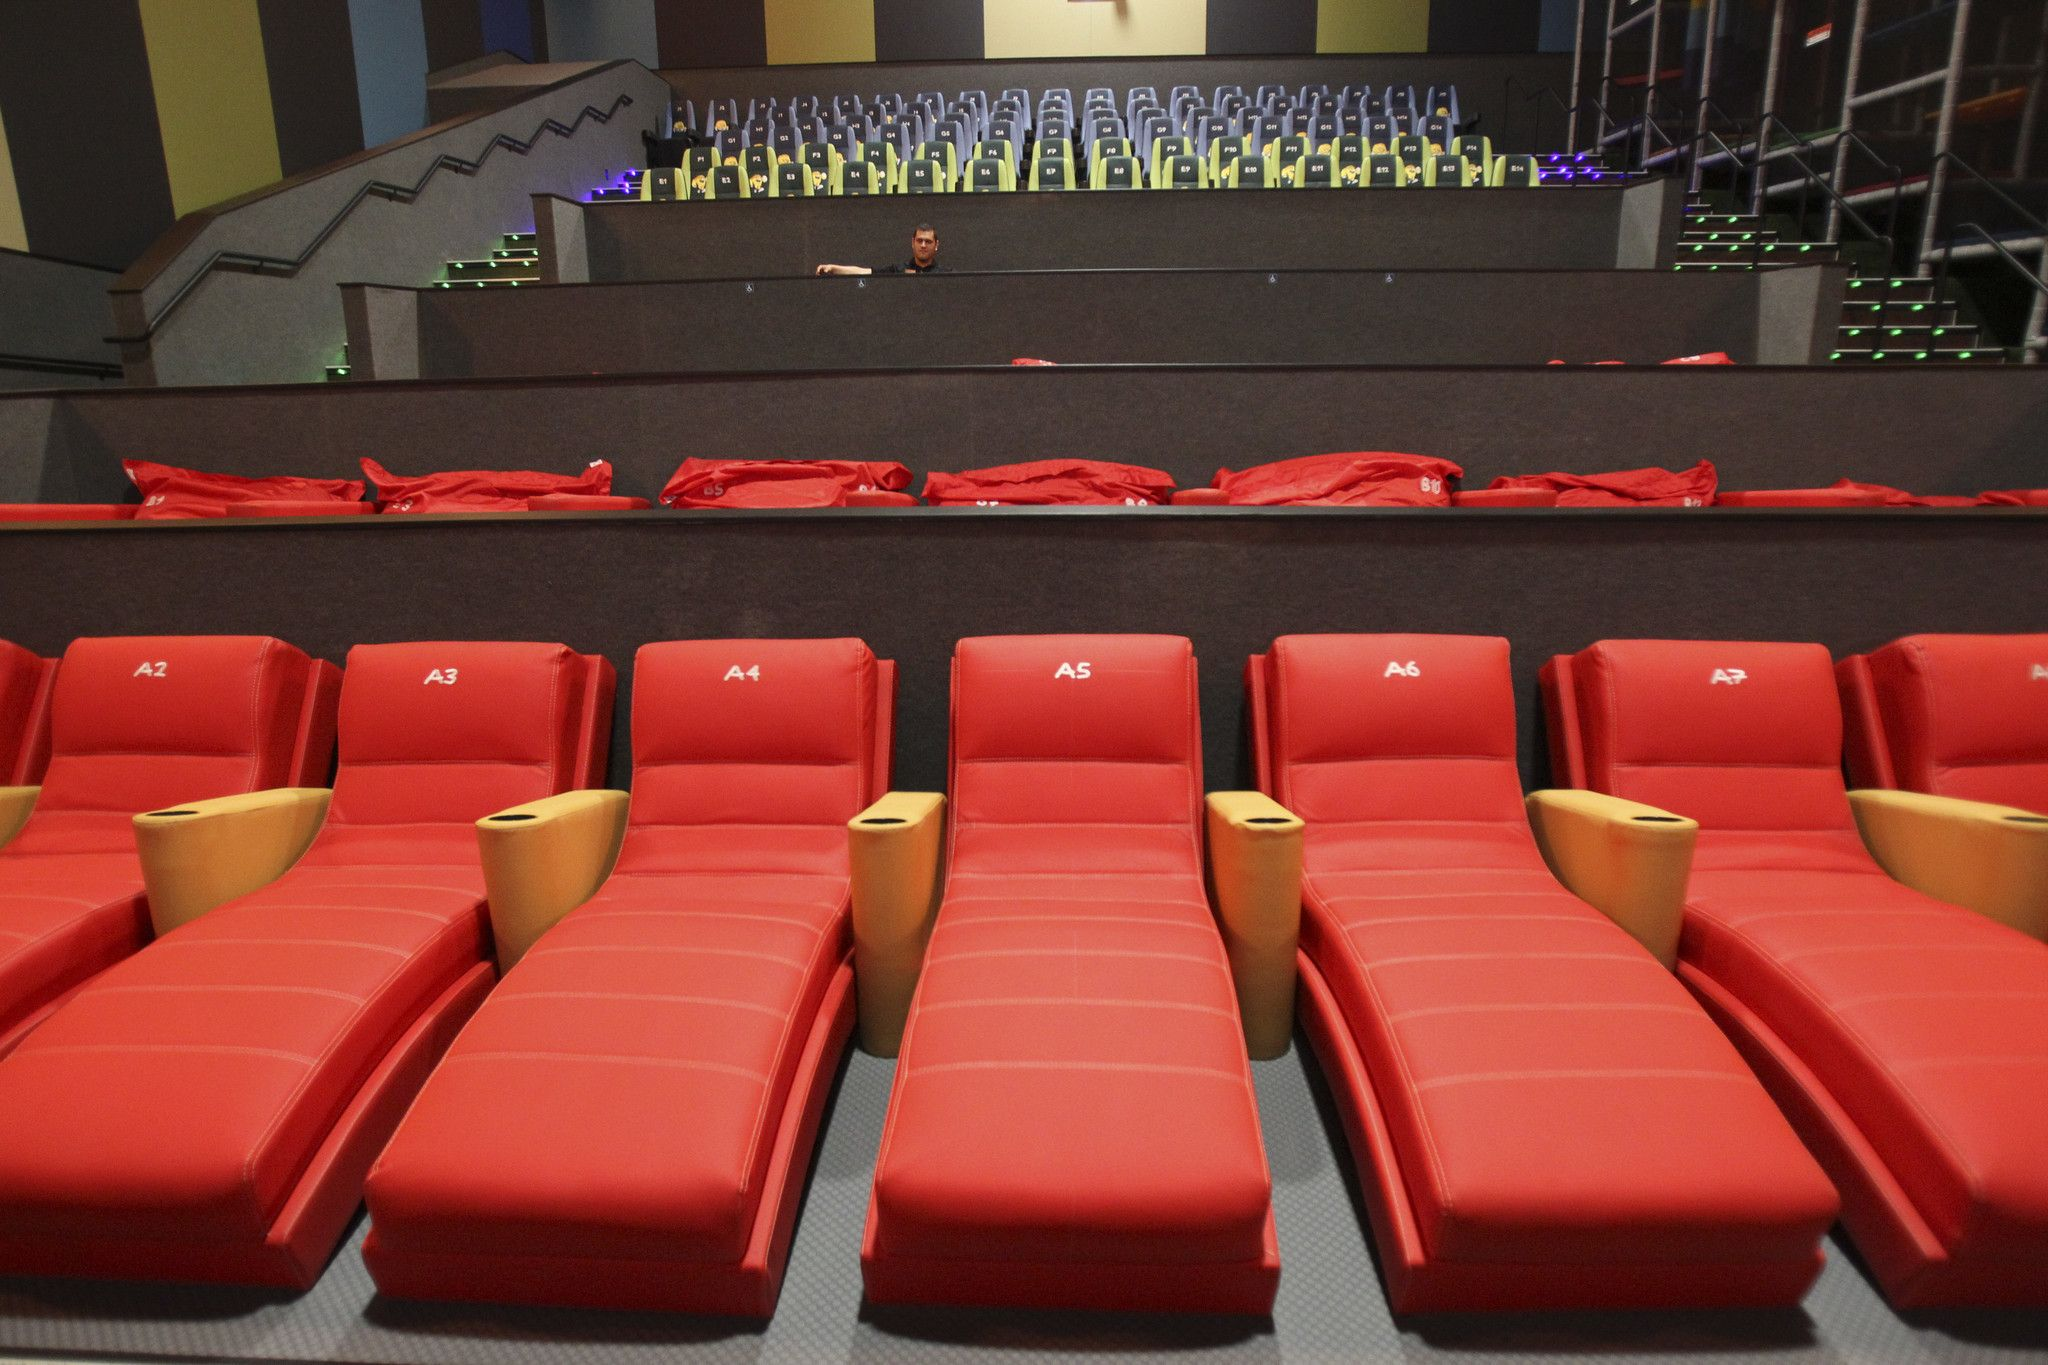 new vista cinema offers smells rain fog with your popcorn the rh pinterest com Pirates of the Caribbean in 4DX Cinema 4DX Theater USA